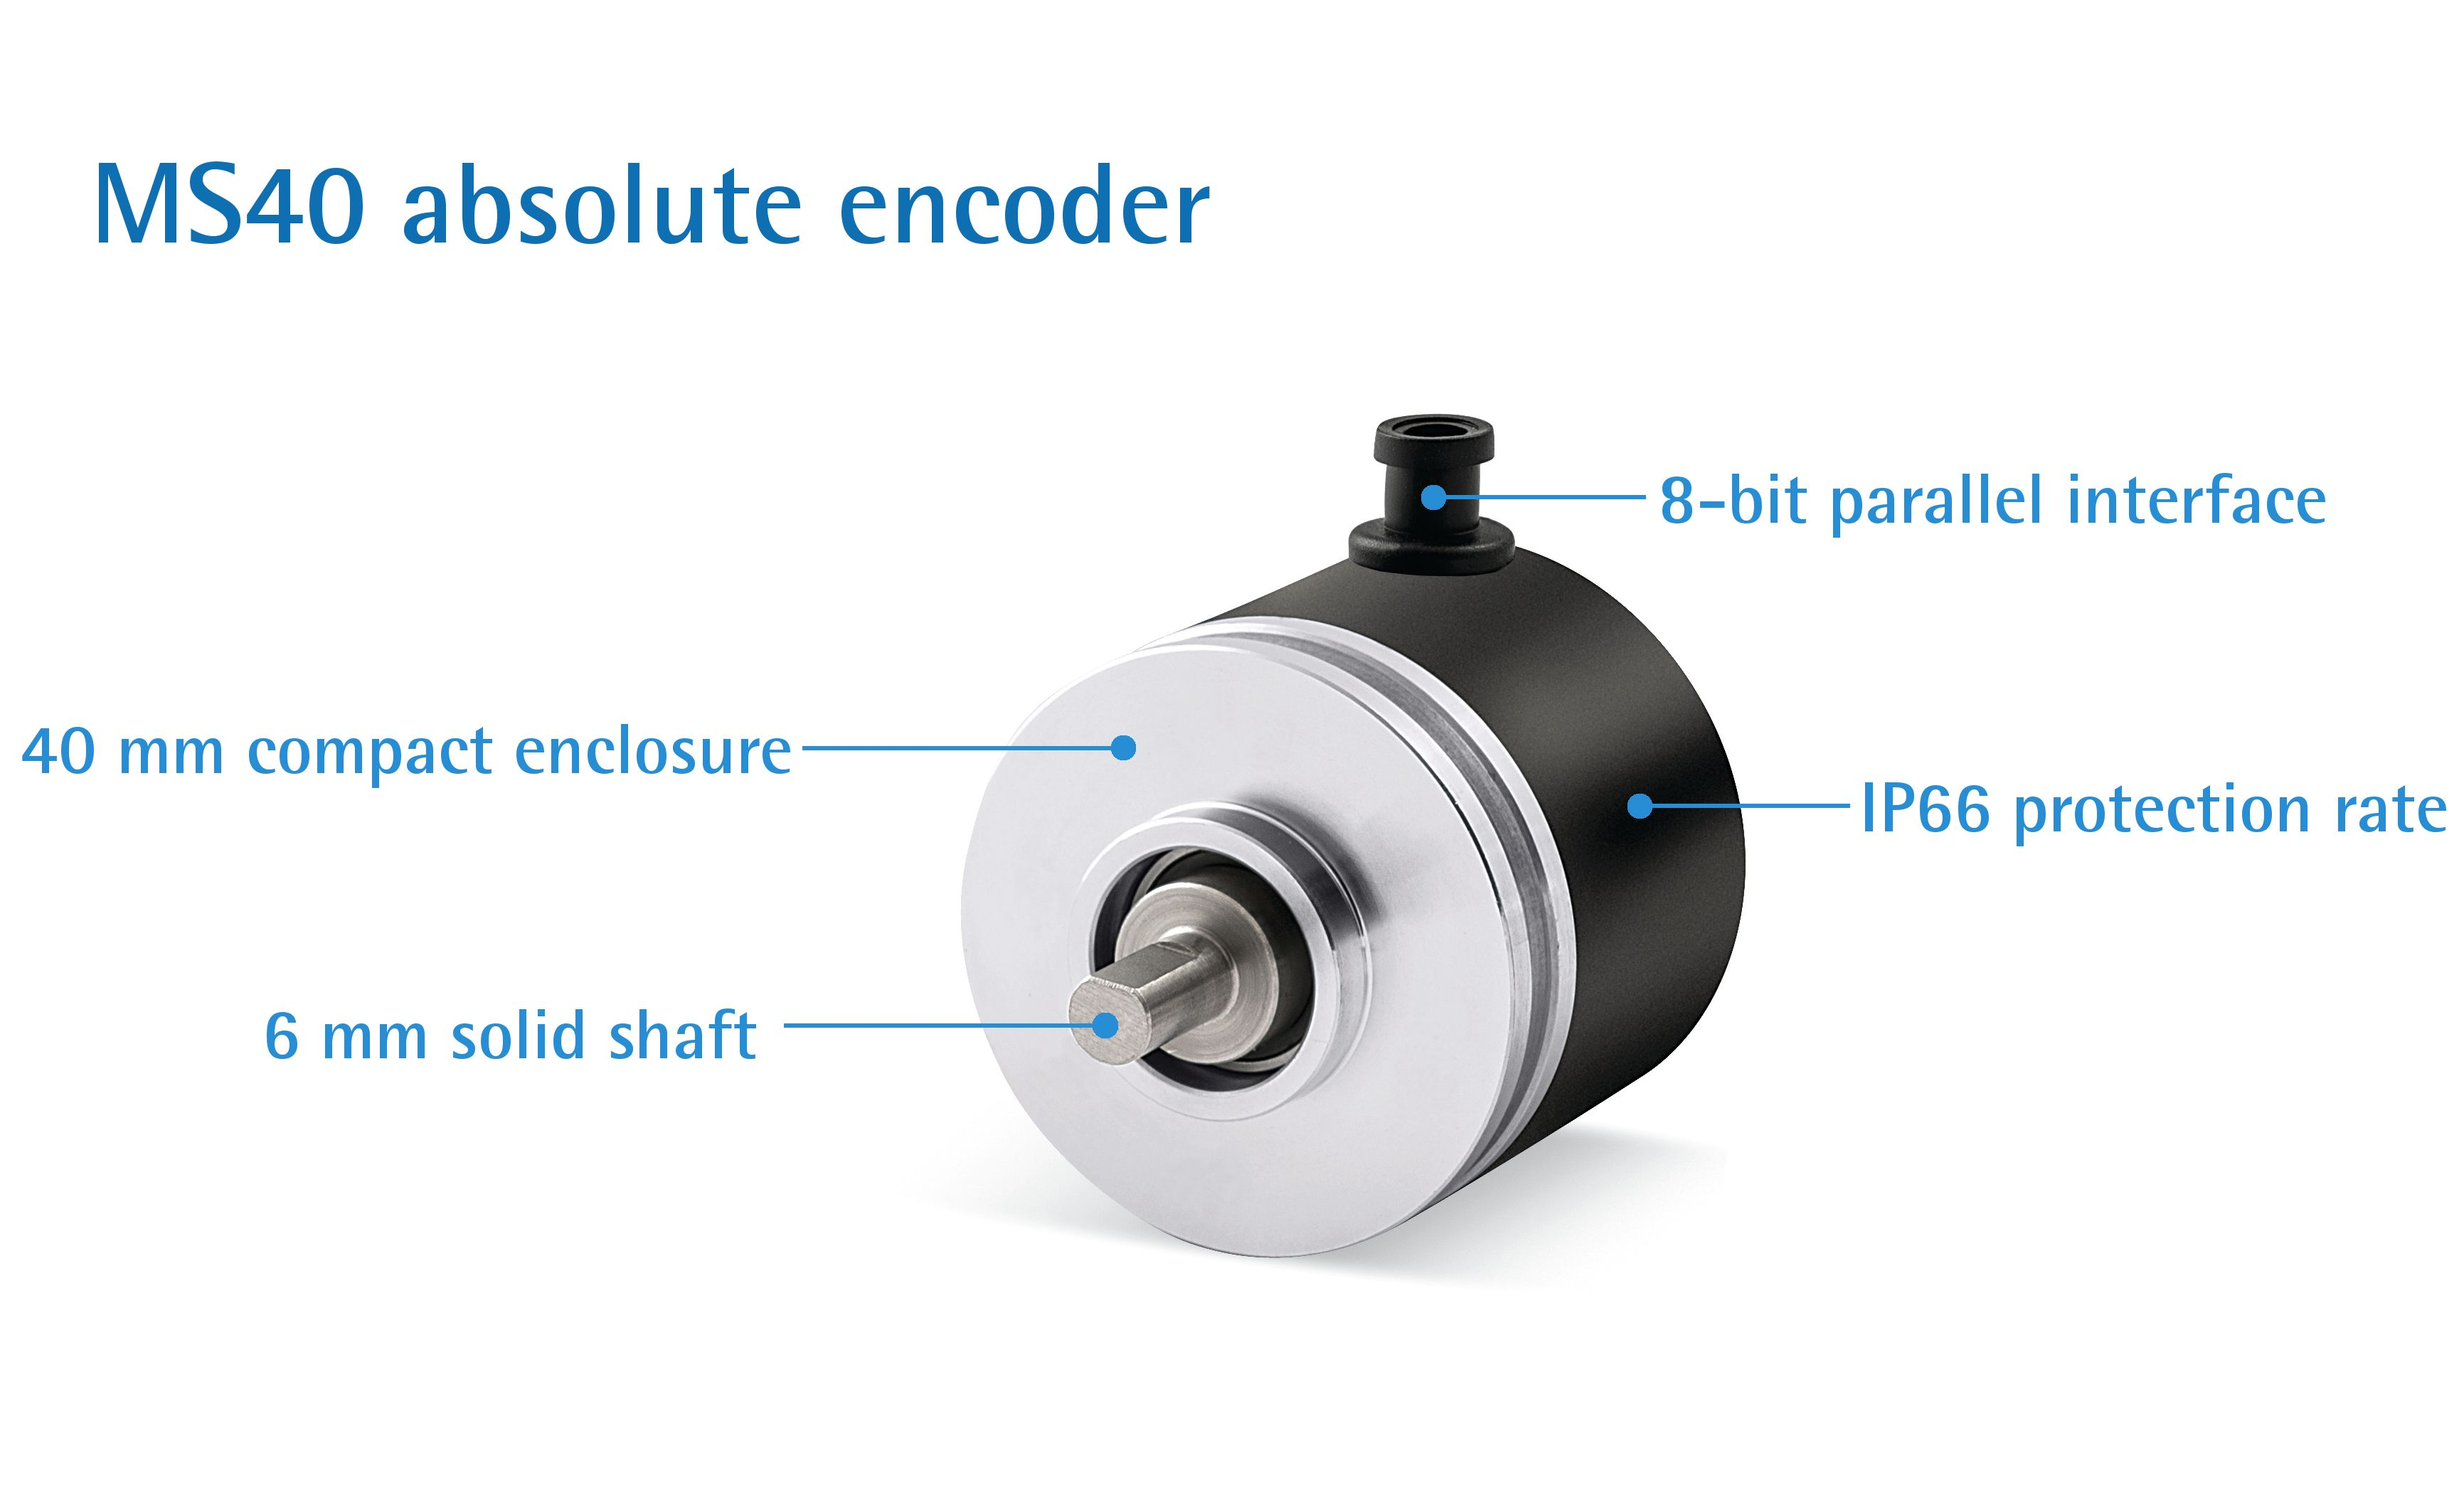 Pin by Lika Electronic on Absolute encoders | Easy, Compact